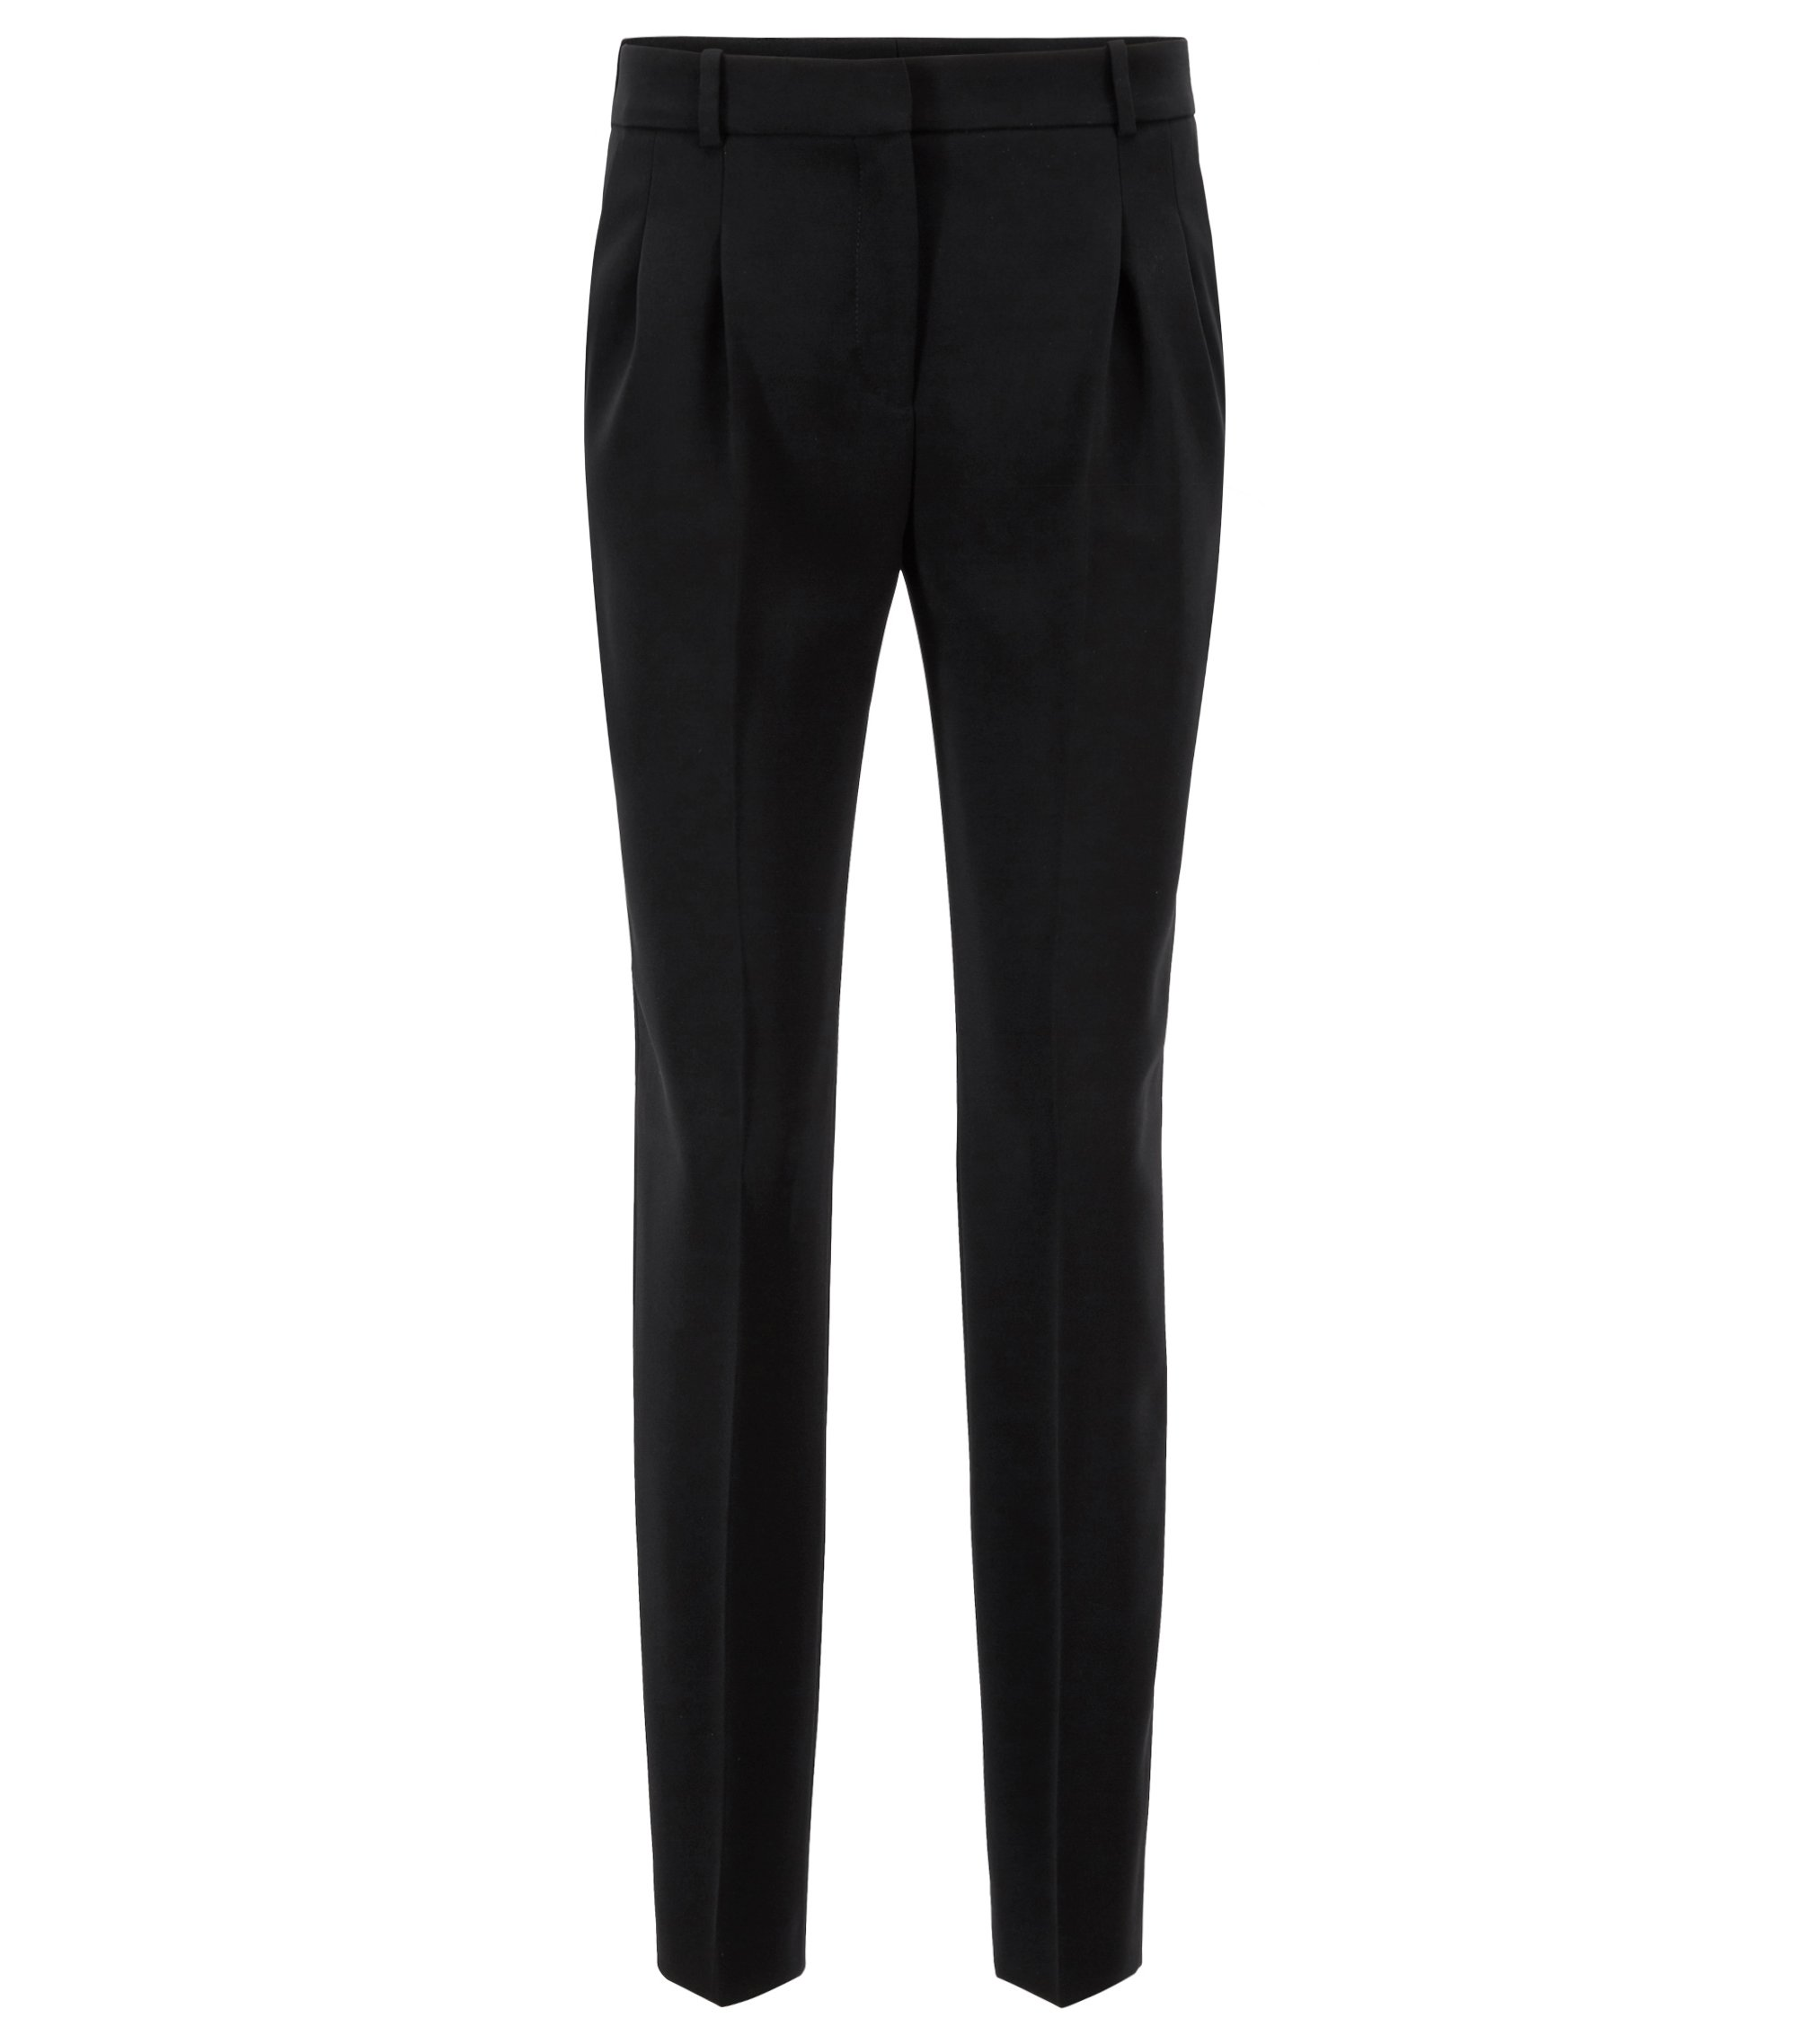 Regular-fit trousers in crease-resistant crepe, Schwarz